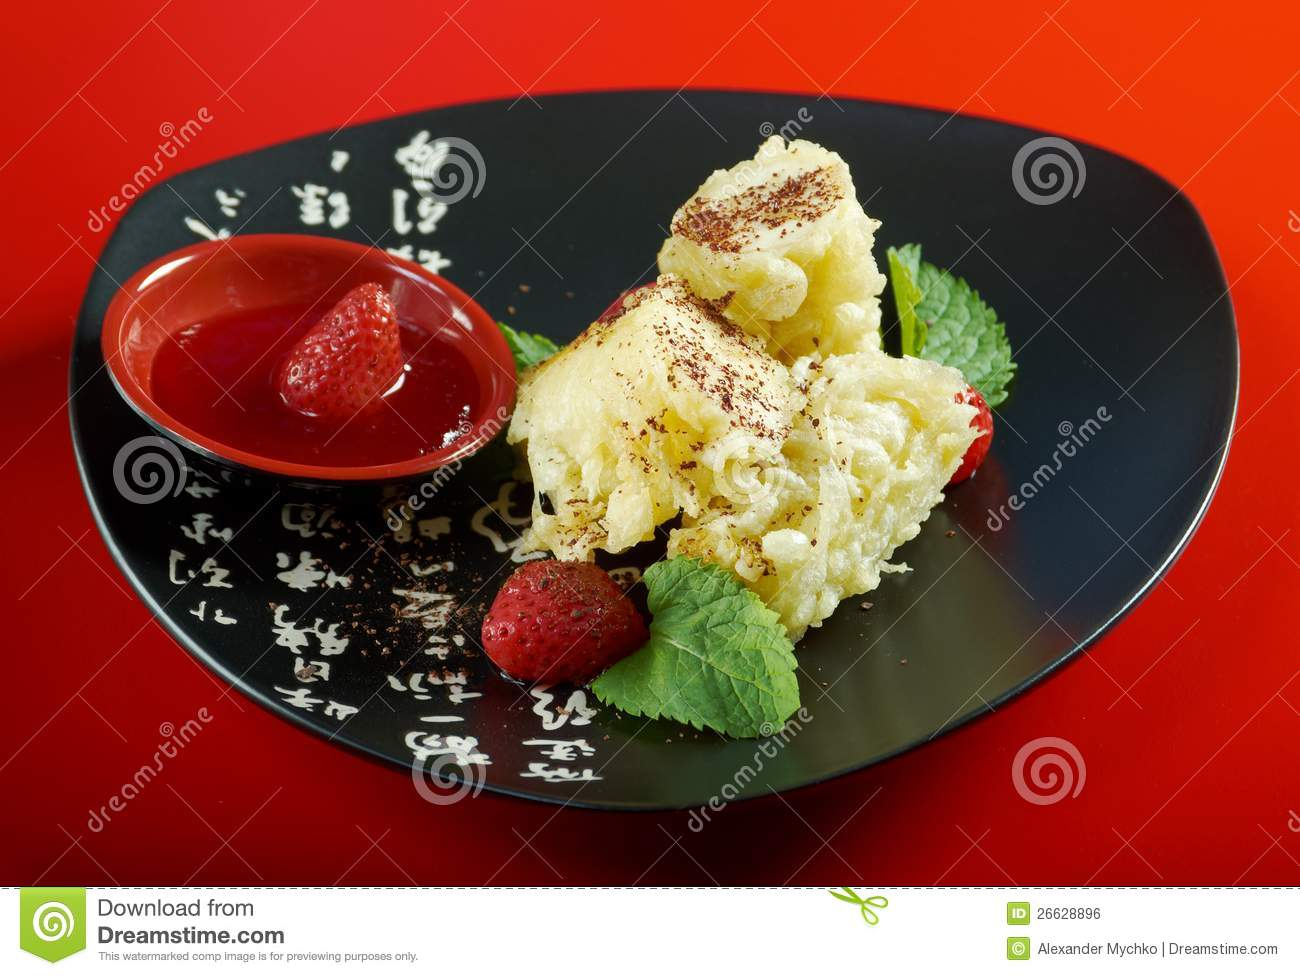 Dessert with banana for Asian cuisine dessert